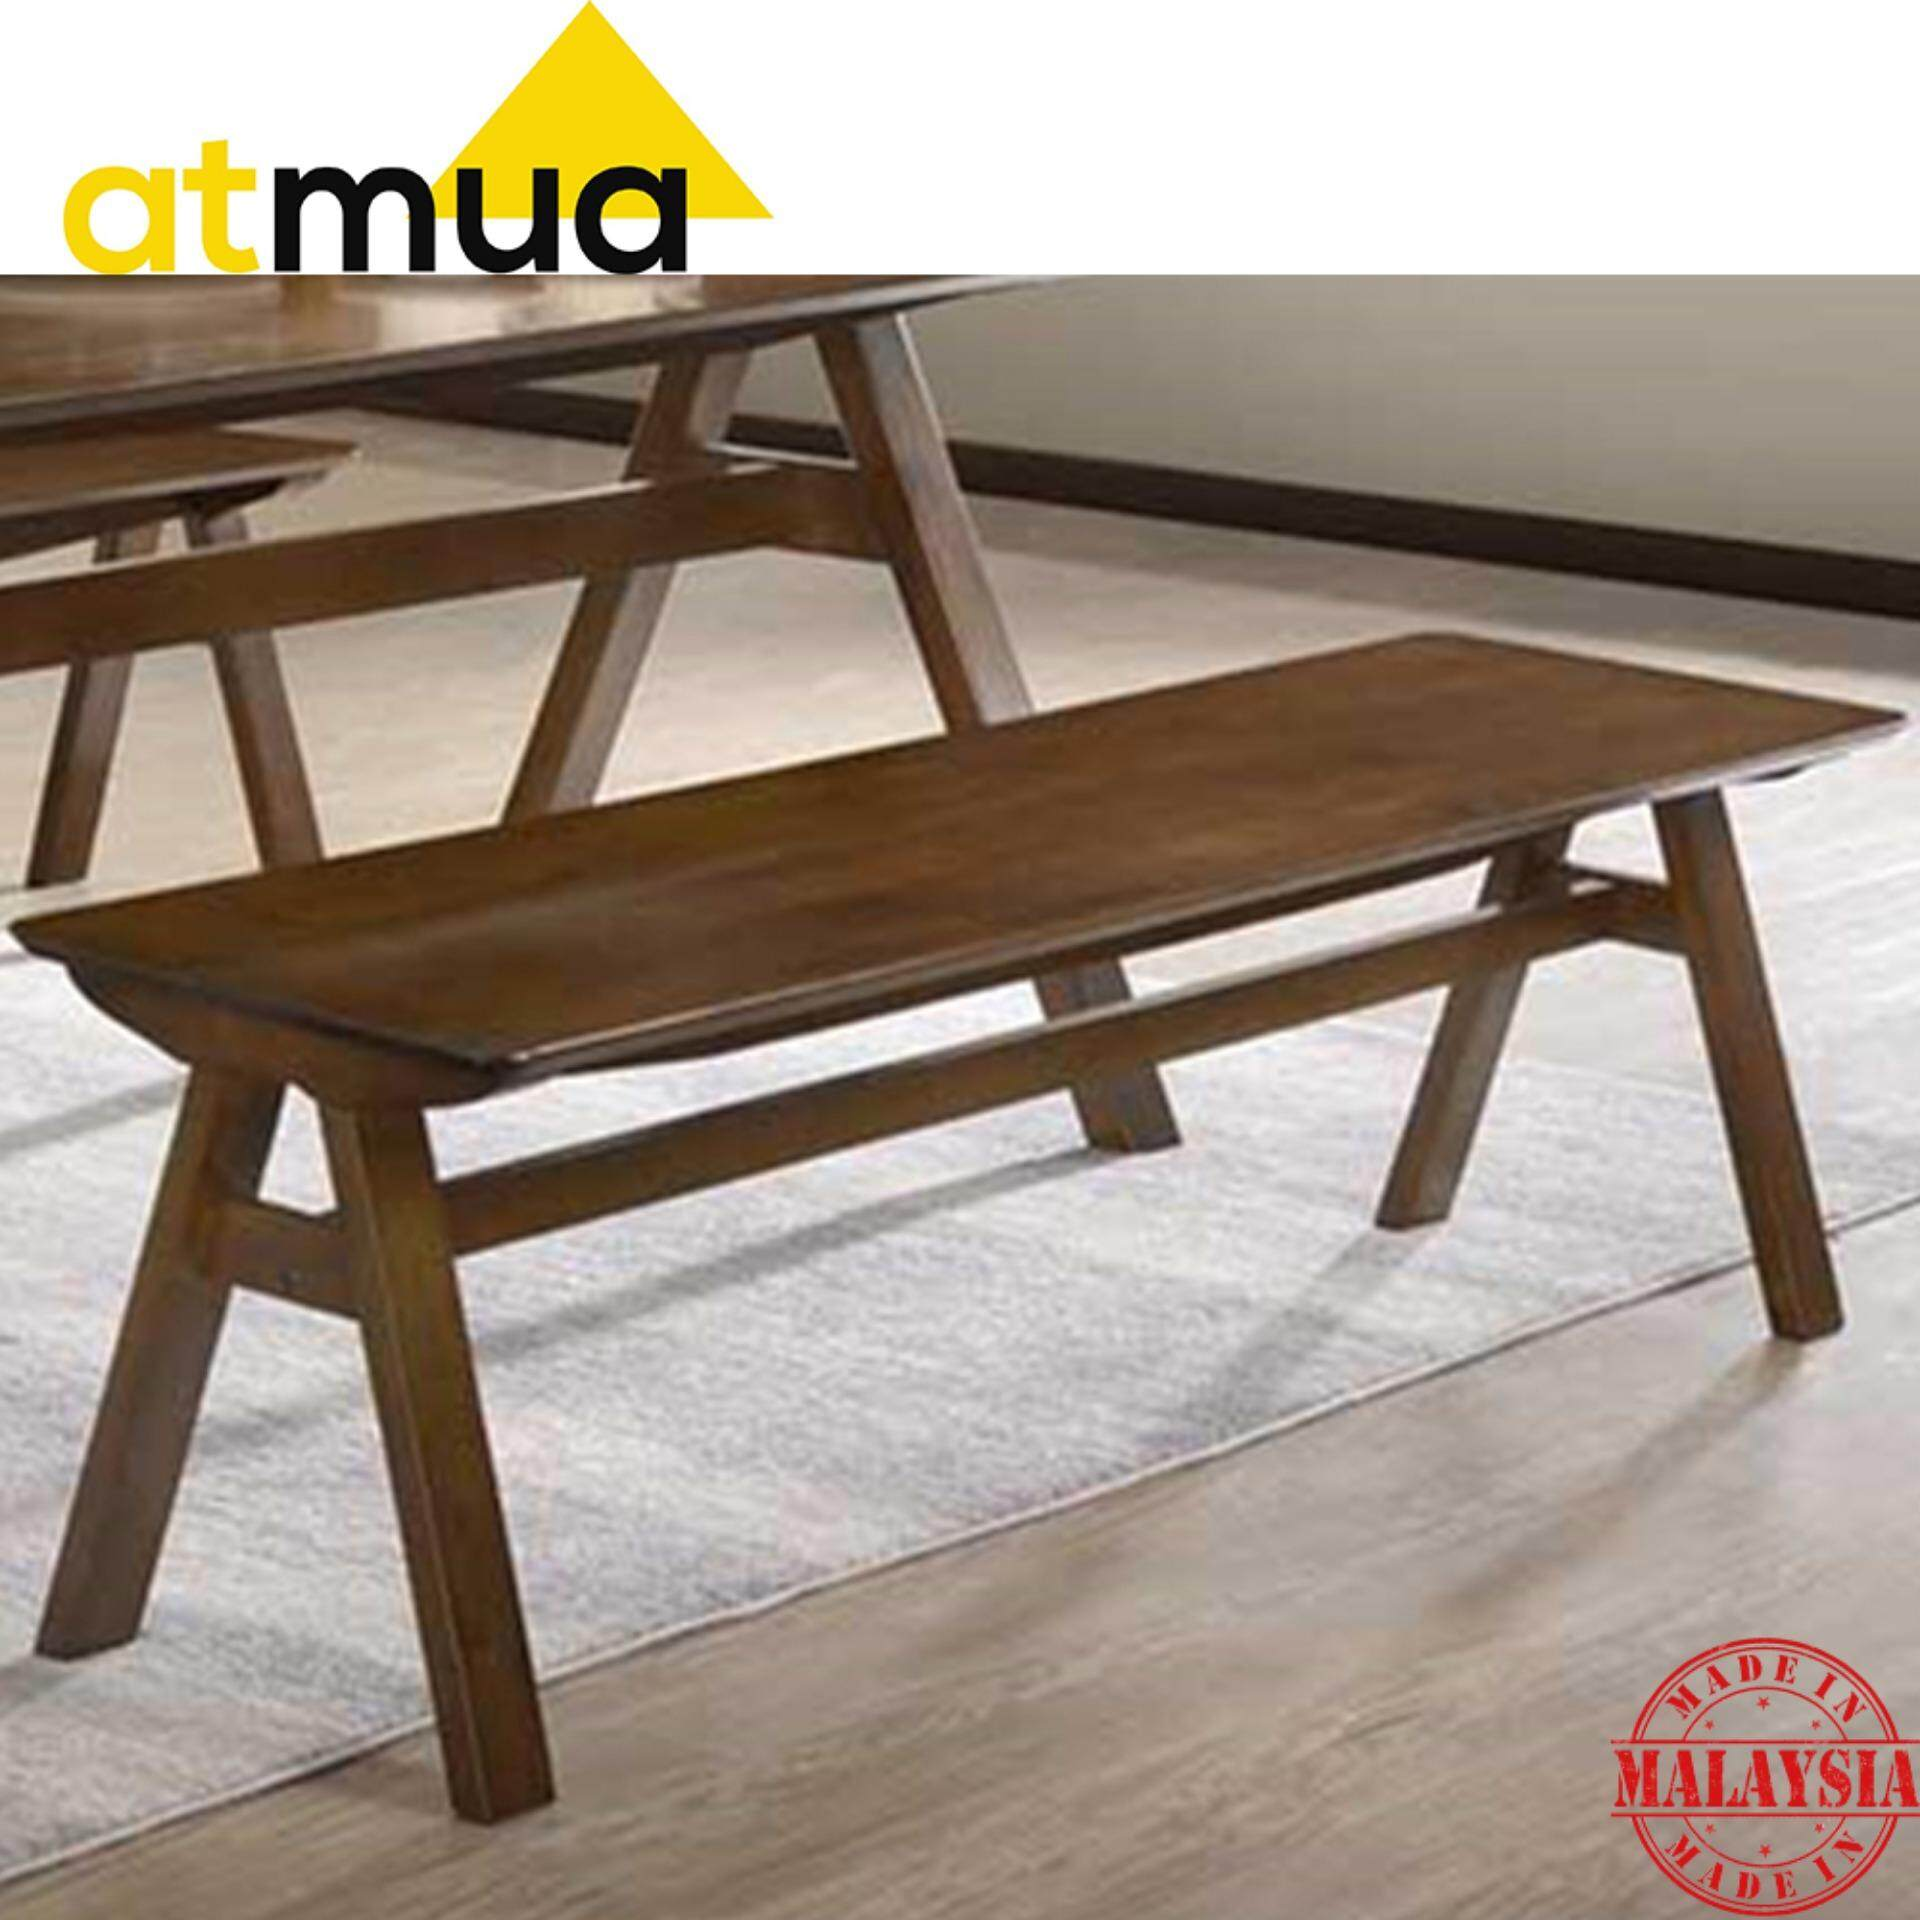 Atmua Vivo Bench Chair 5 Feet [Full Solid Rubber Wood] 3 Seater Extra Strong Outdoor Furniture